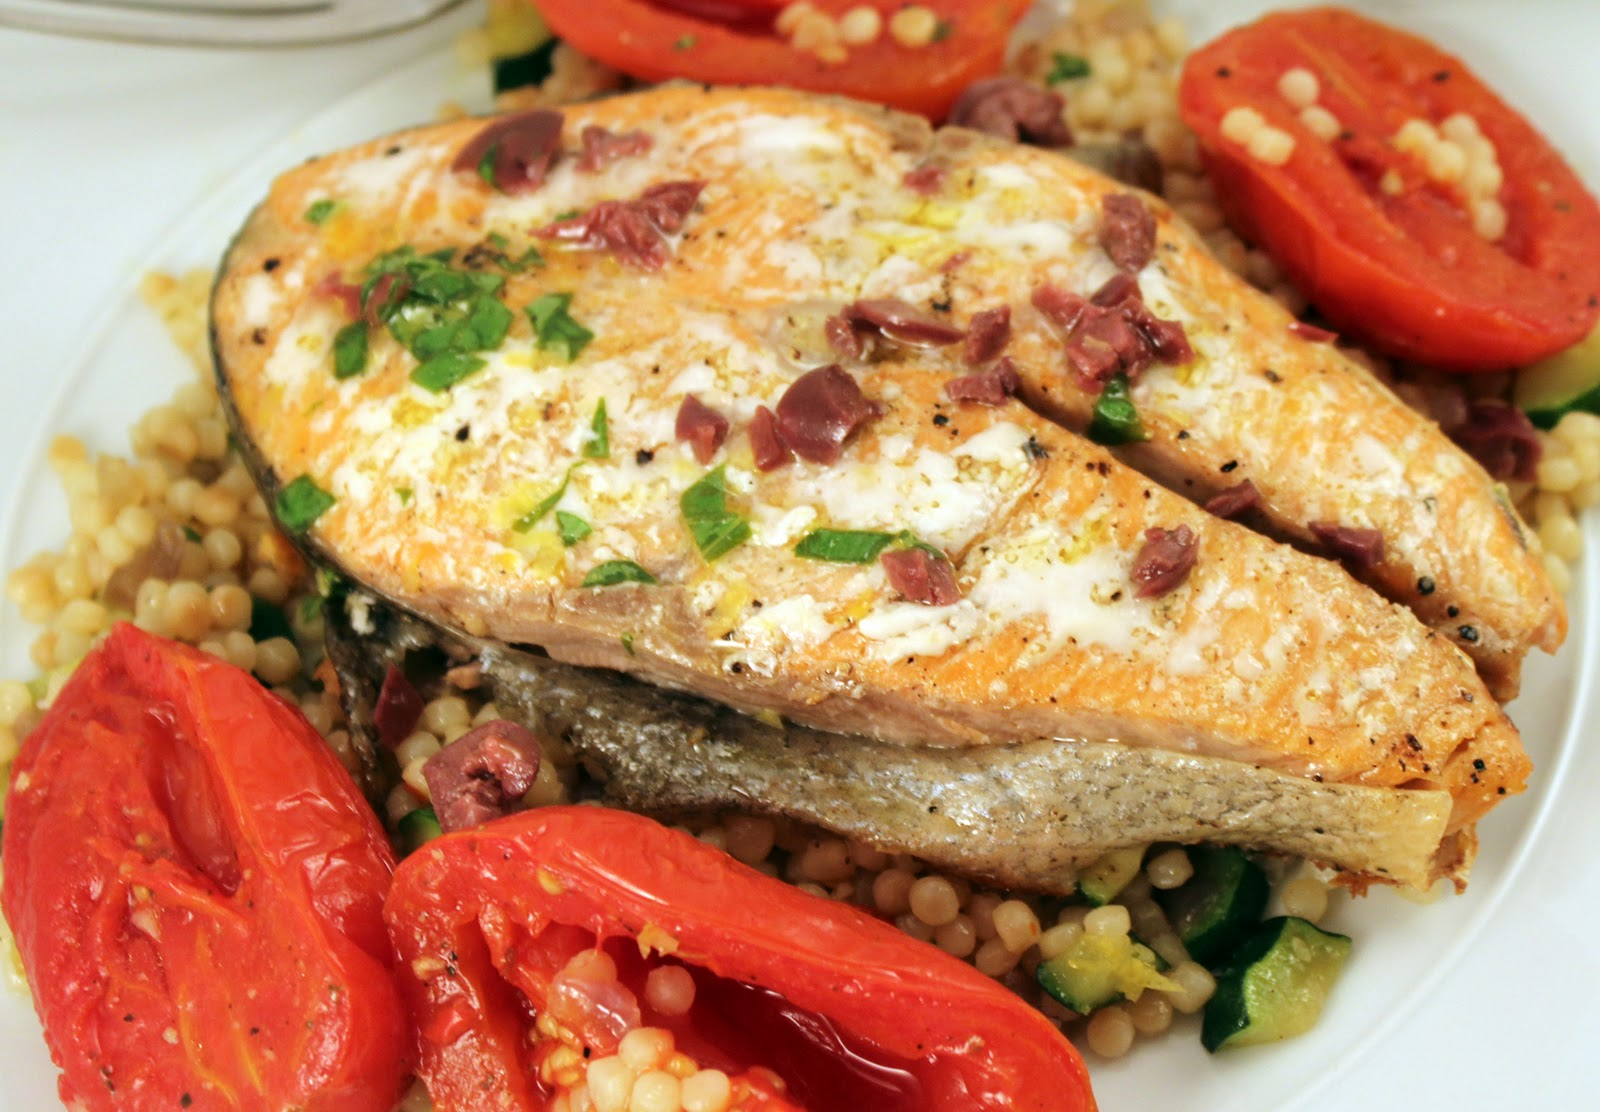 Simply Scrumptious Salmon With Slow Roasted Tomatoes And Vegetable Israeli Couscous